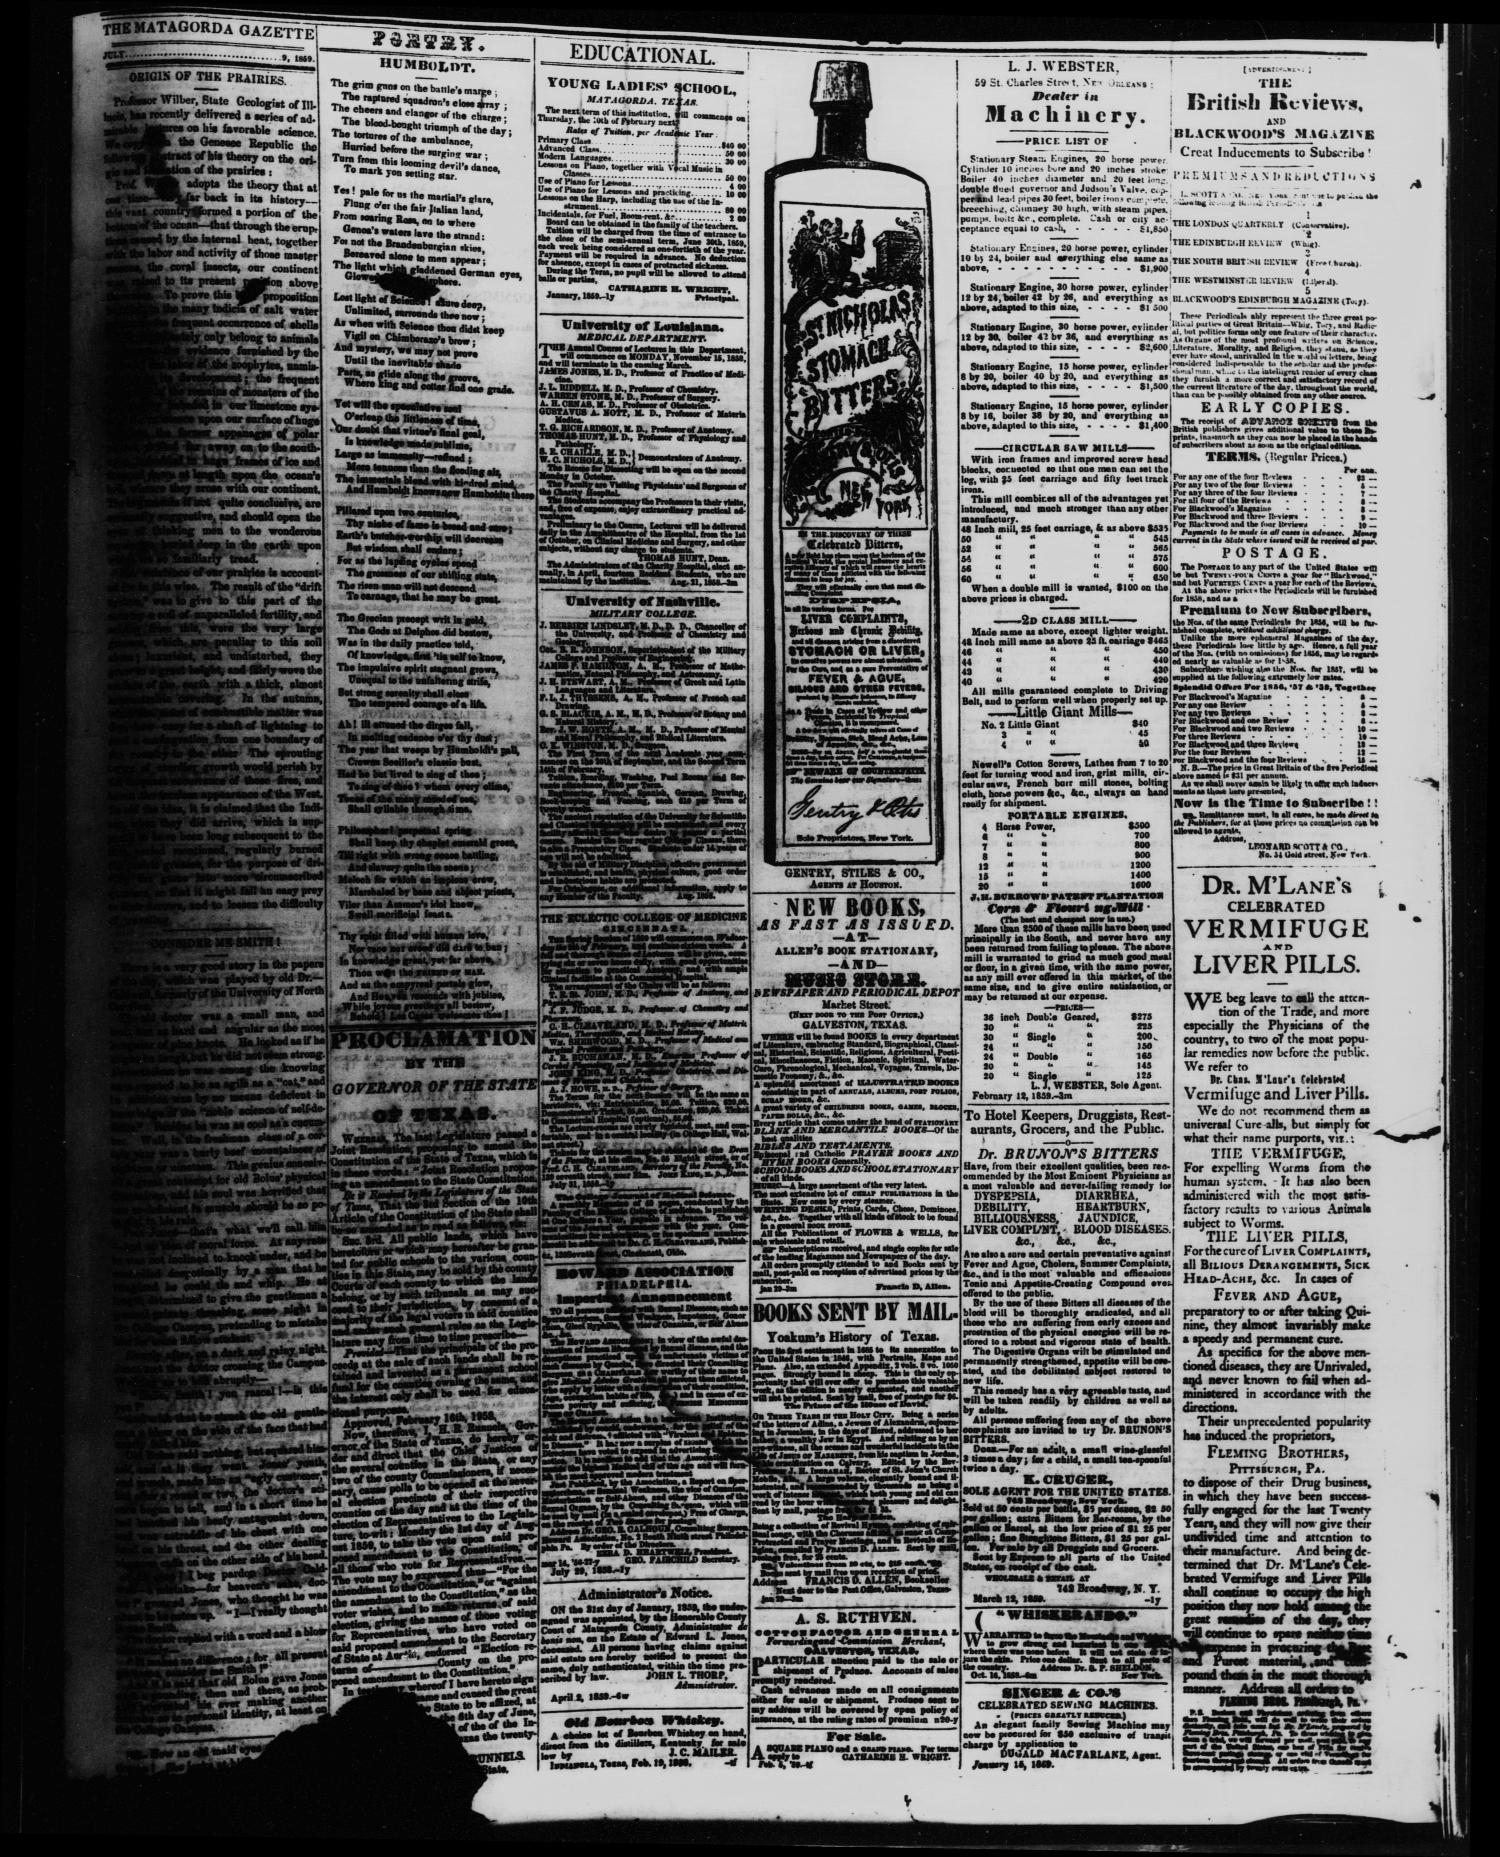 The Matagorda Gazette. (Matagorda, Tex.), Vol. 1, No. 49, Ed. 1 Saturday, July 9, 1859                                                                                                      [Sequence #]: 4 of 4